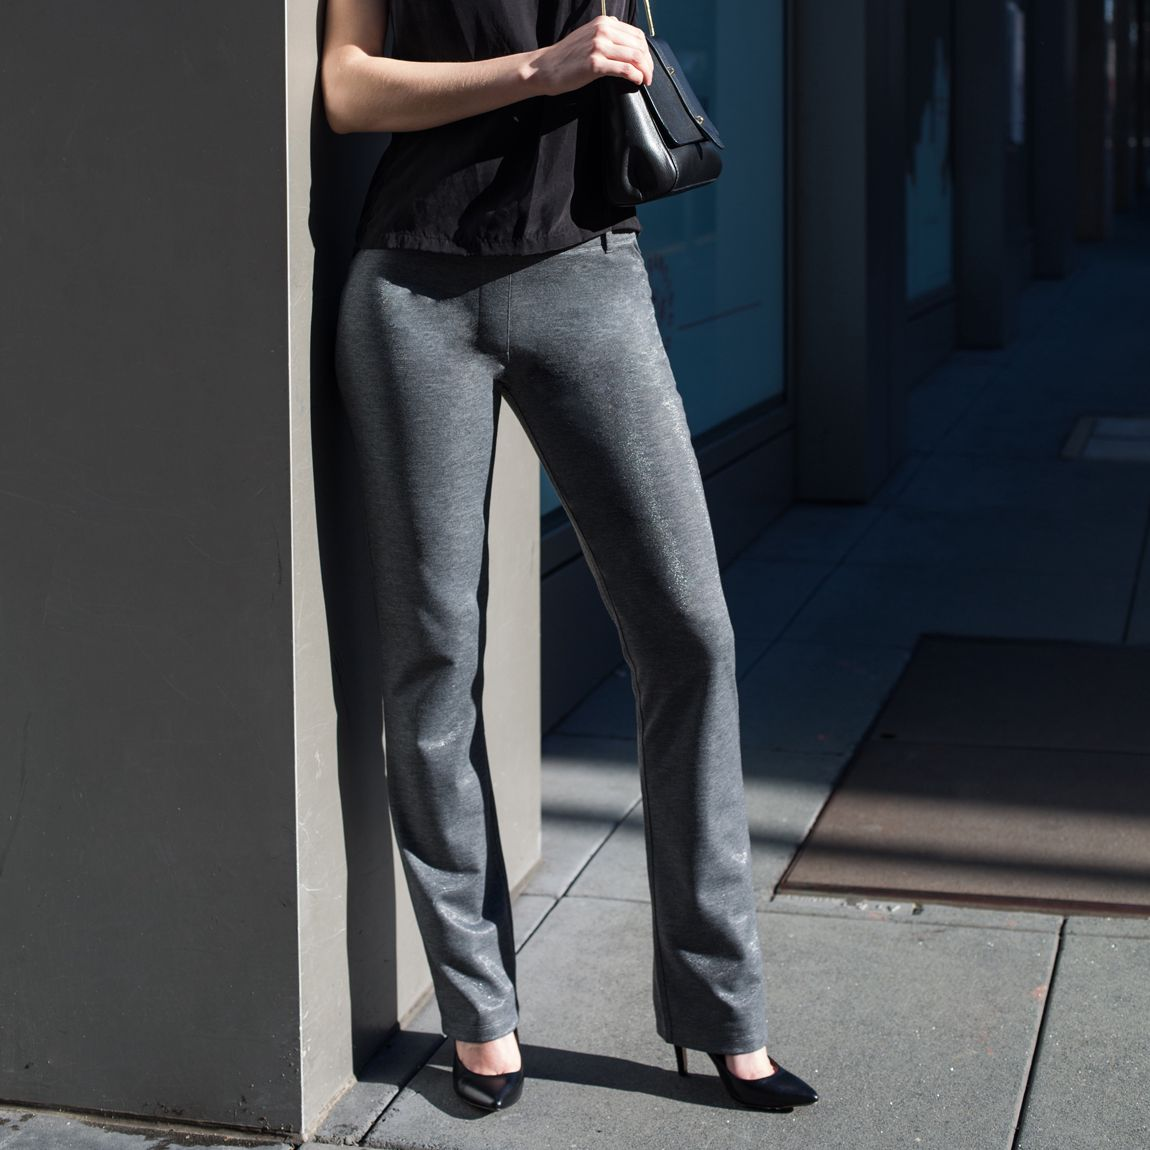 Betabrand Yoga Dress Pants | Casual Yoga Pants | Dressy Trousers